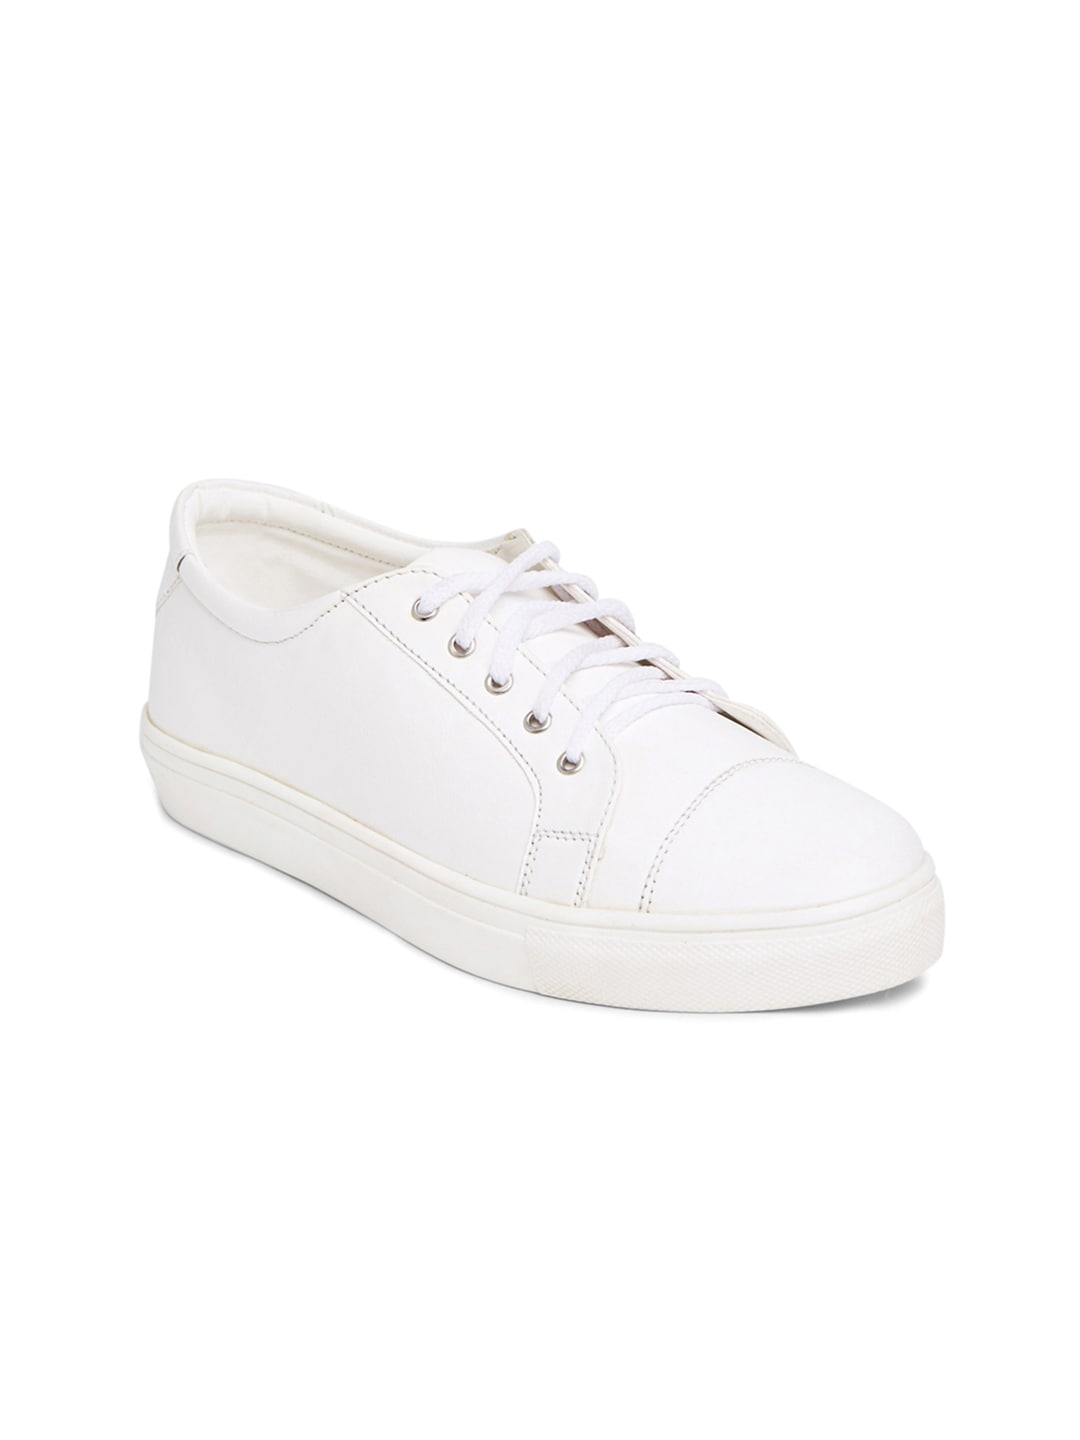 white shoes for shoes for yourstyles